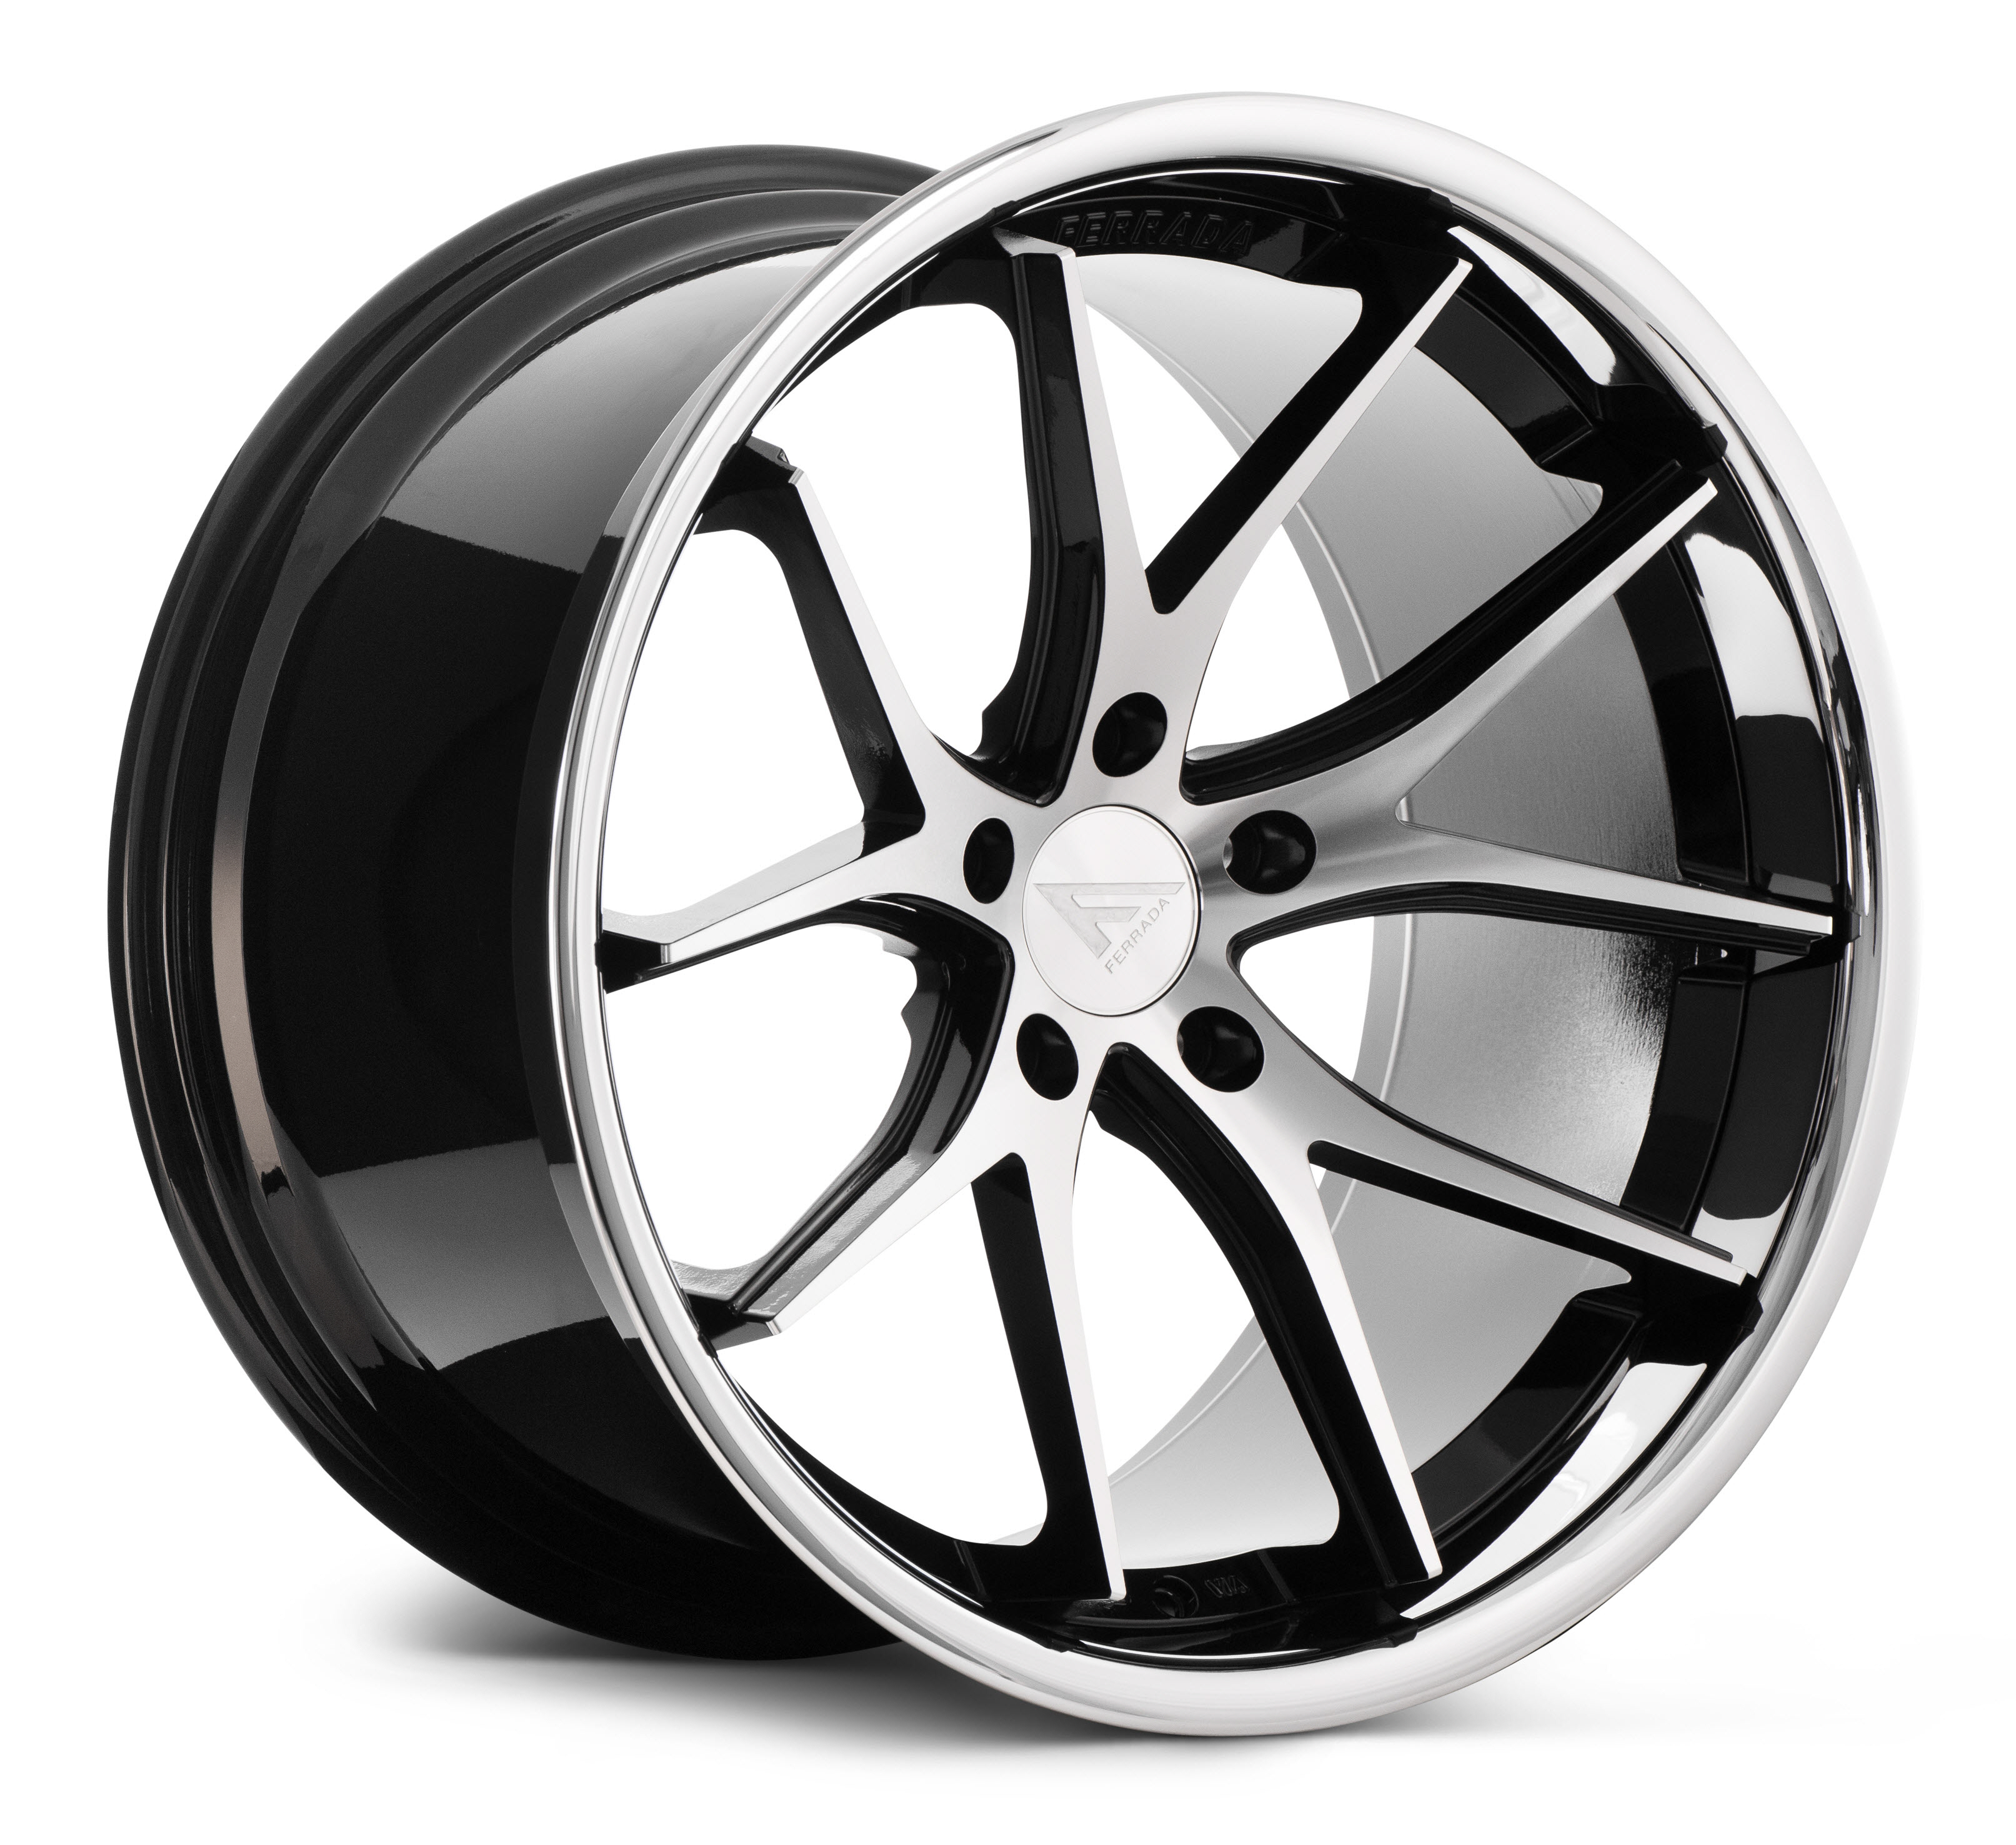 FR2  WHEELS AND RIMS PACKAGES